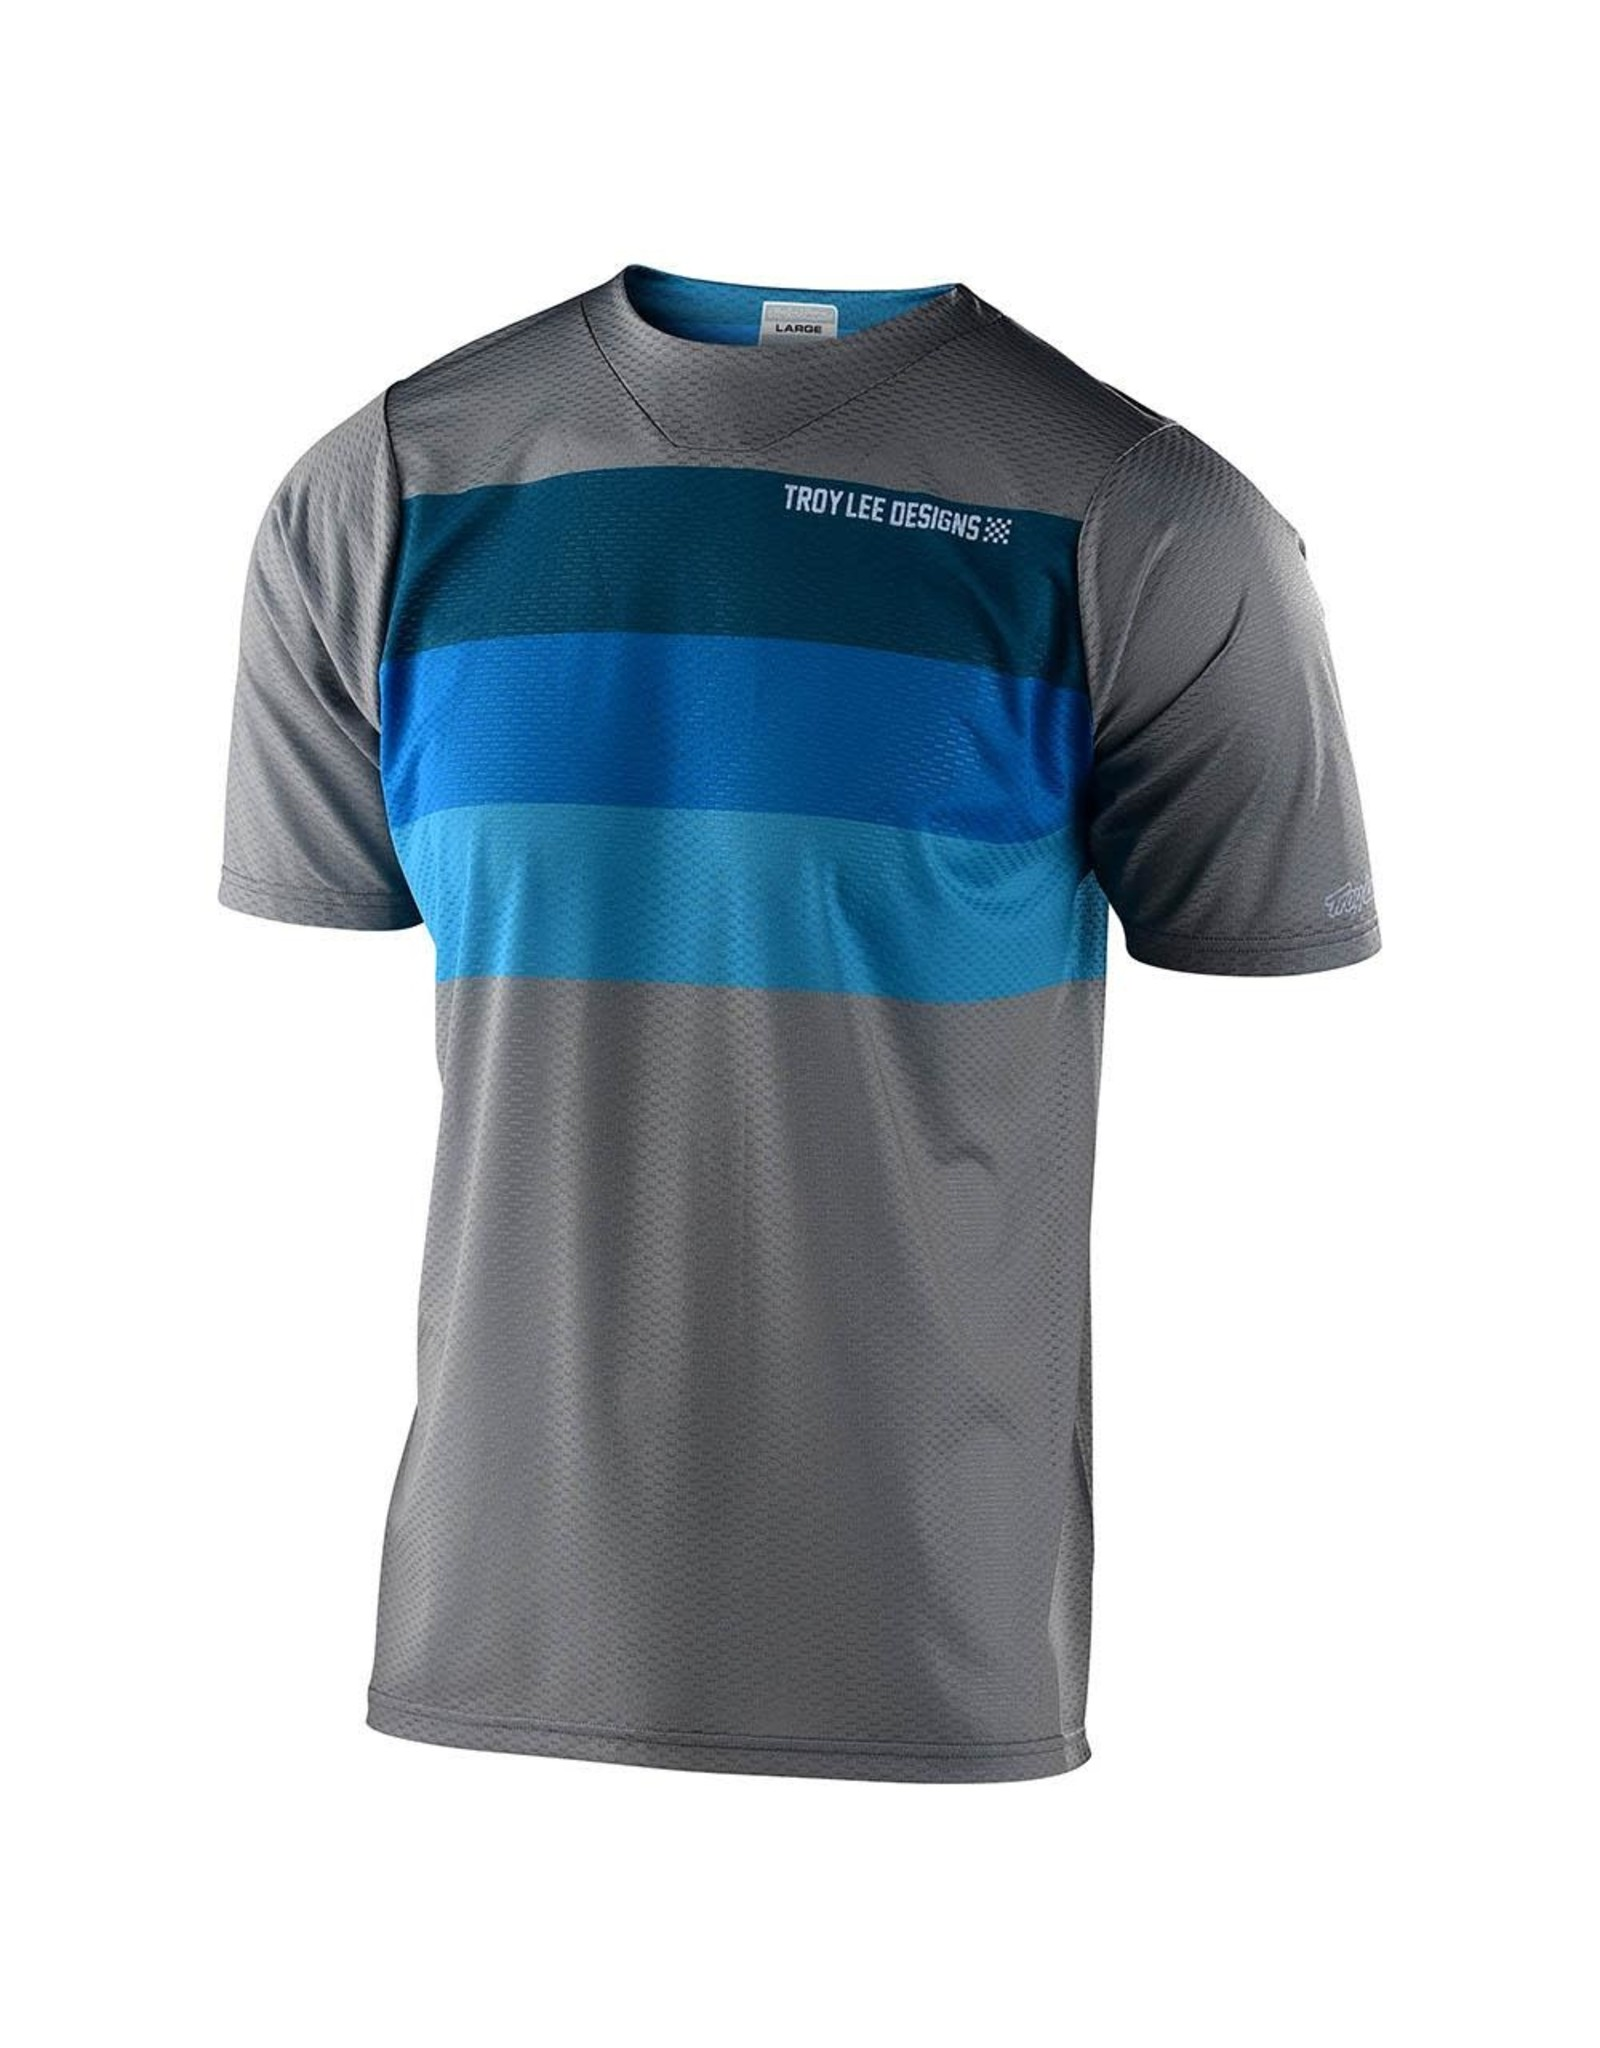 Troy Lee Designs Skyline Air SS Jersey Gry/Blu